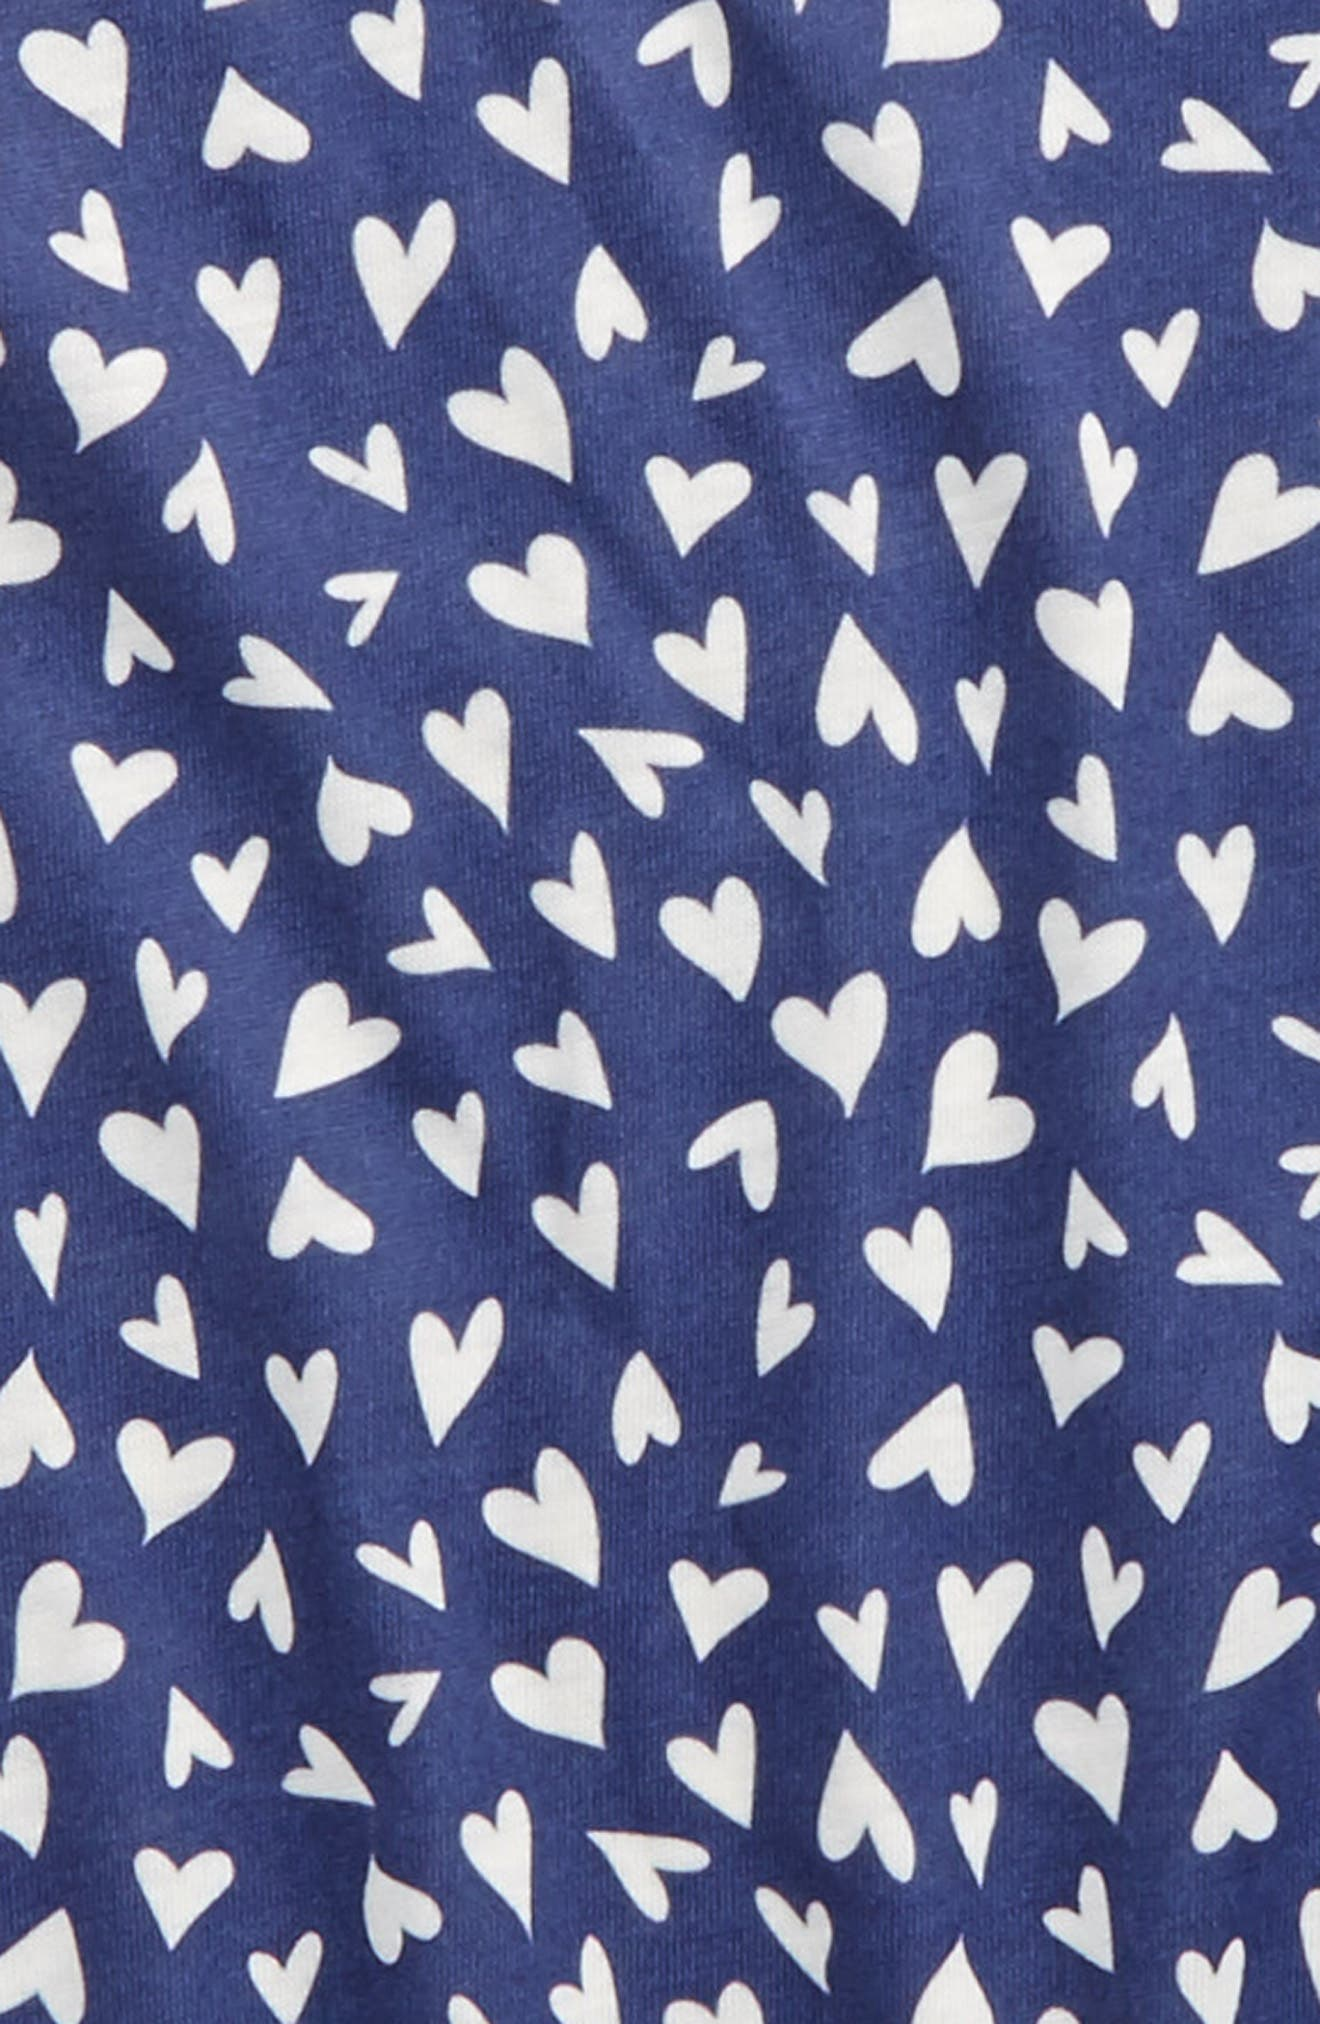 Ruffle Nightgown,                             Alternate thumbnail 2, color,                             Navy Skipper Tossed Hearts